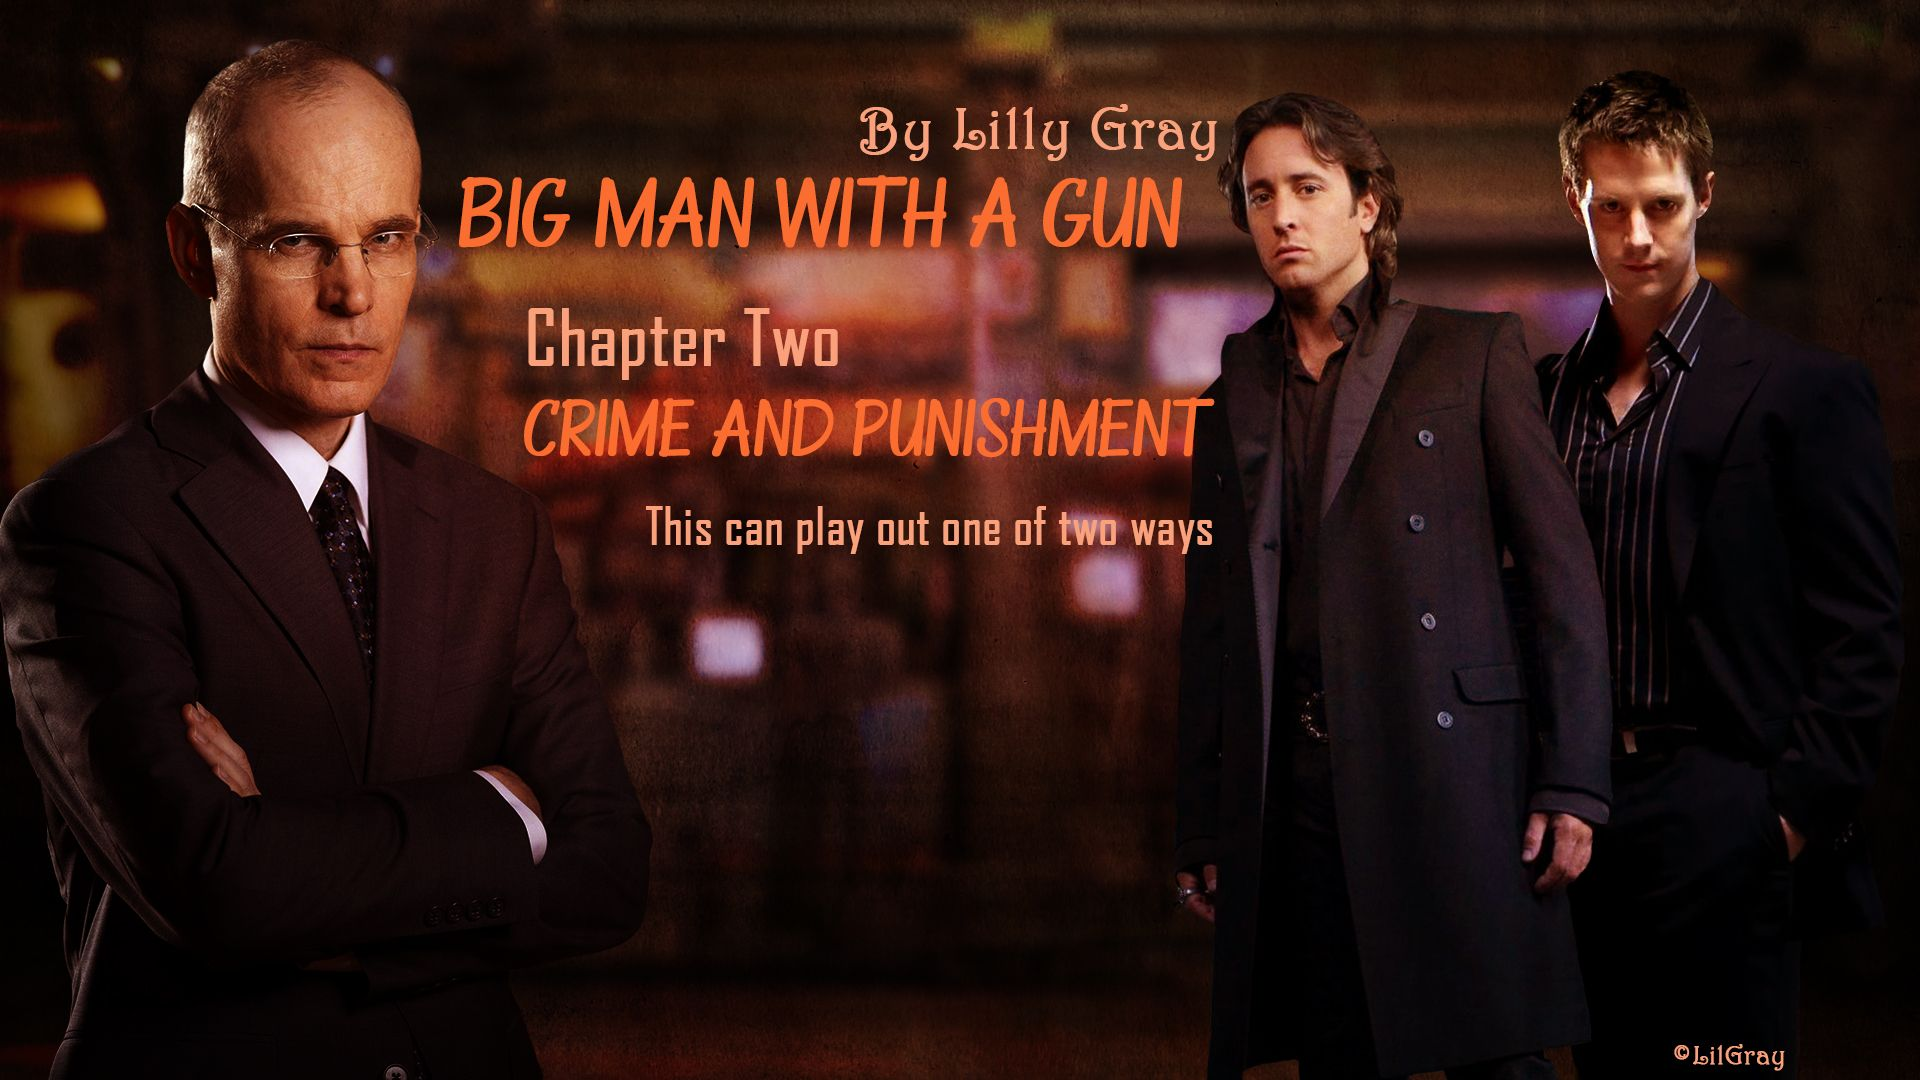 Big Man with a Gun chapter banner for Chapter 002: Crime and